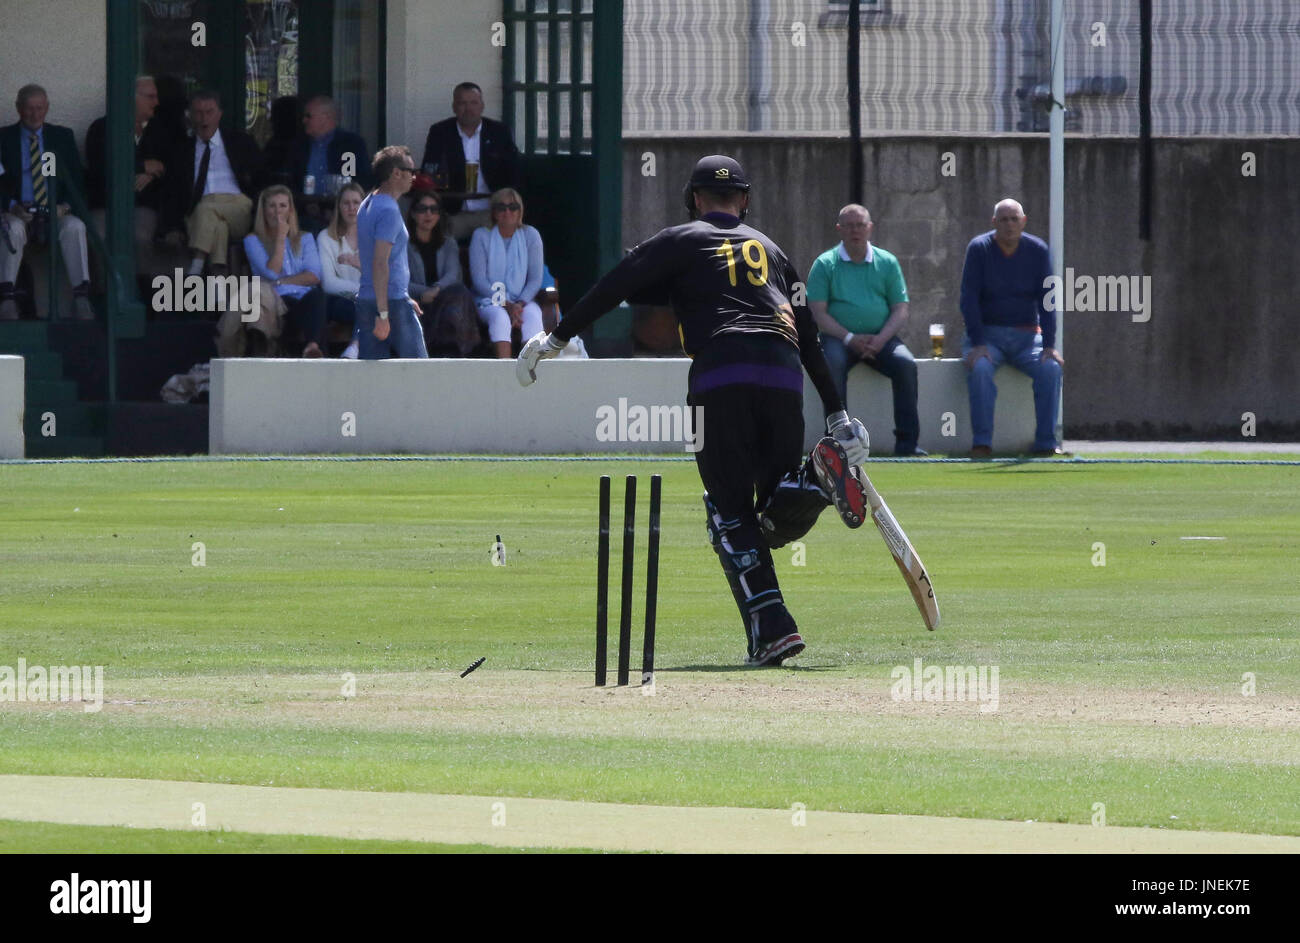 The Green, Comber, Northern Ireland, UK. 29 July 2017. CIYMS defeated Instonians by six wickets to win the Arthur J Gallagher Cup Final. Instonians' Nathan Smith is run out following a direct hit on the stumps. Credit: David Hunter/Alamy Live News. - Stock Image